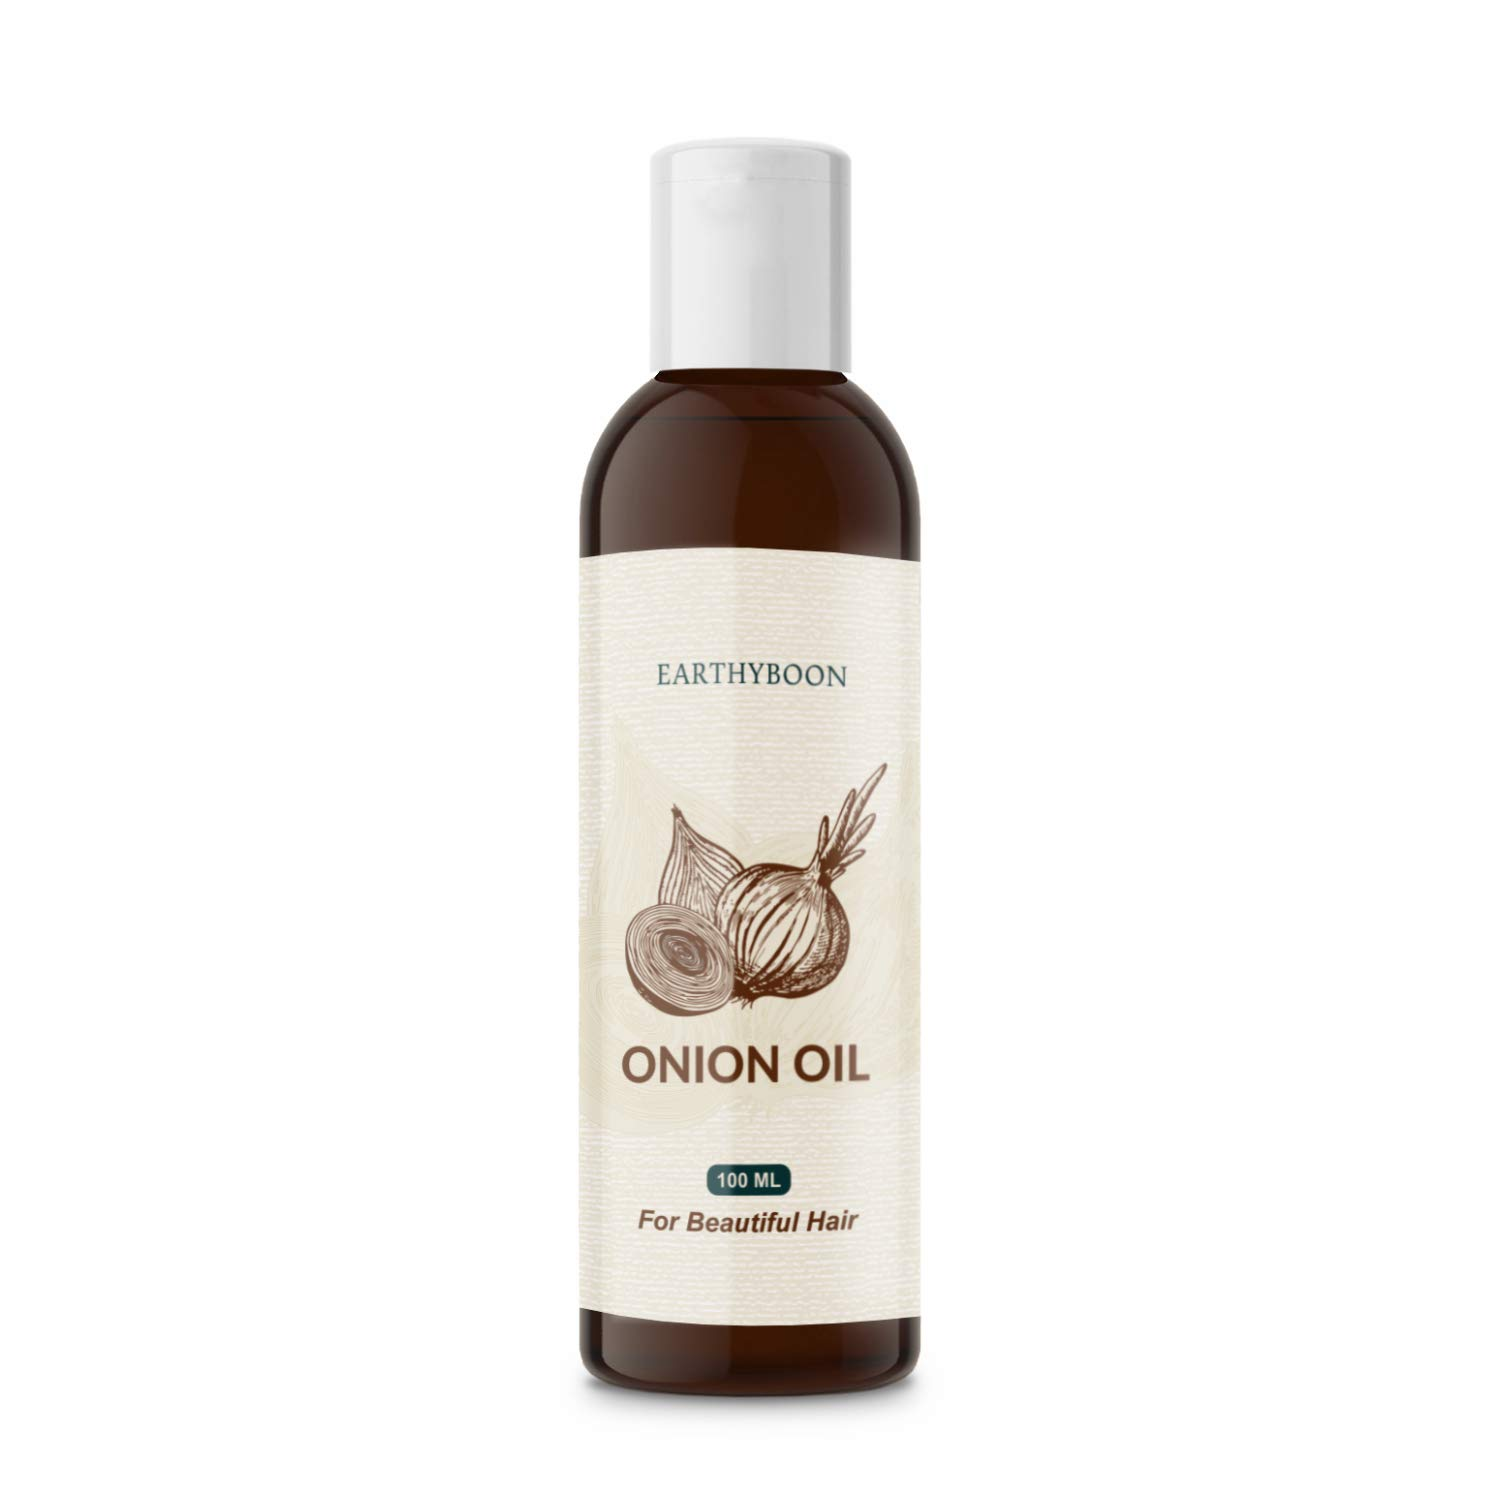 EARTHY BOON Red Onion Oil Blended with Essential Oils